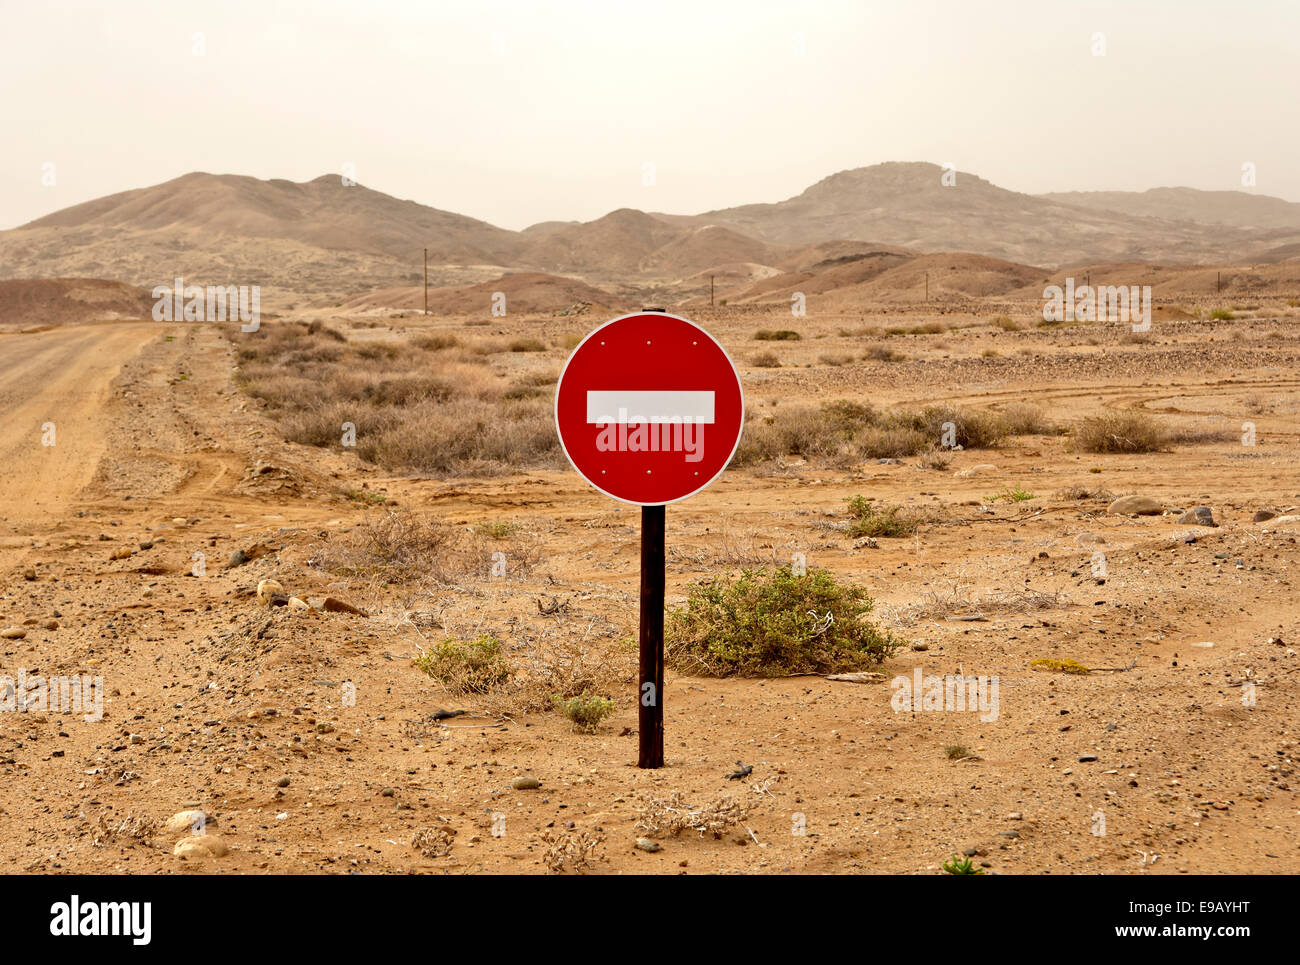 'No entry' traffic sign in a desert landscape, Richtersveld, Northern Cape Province, South Africa - Stock Image